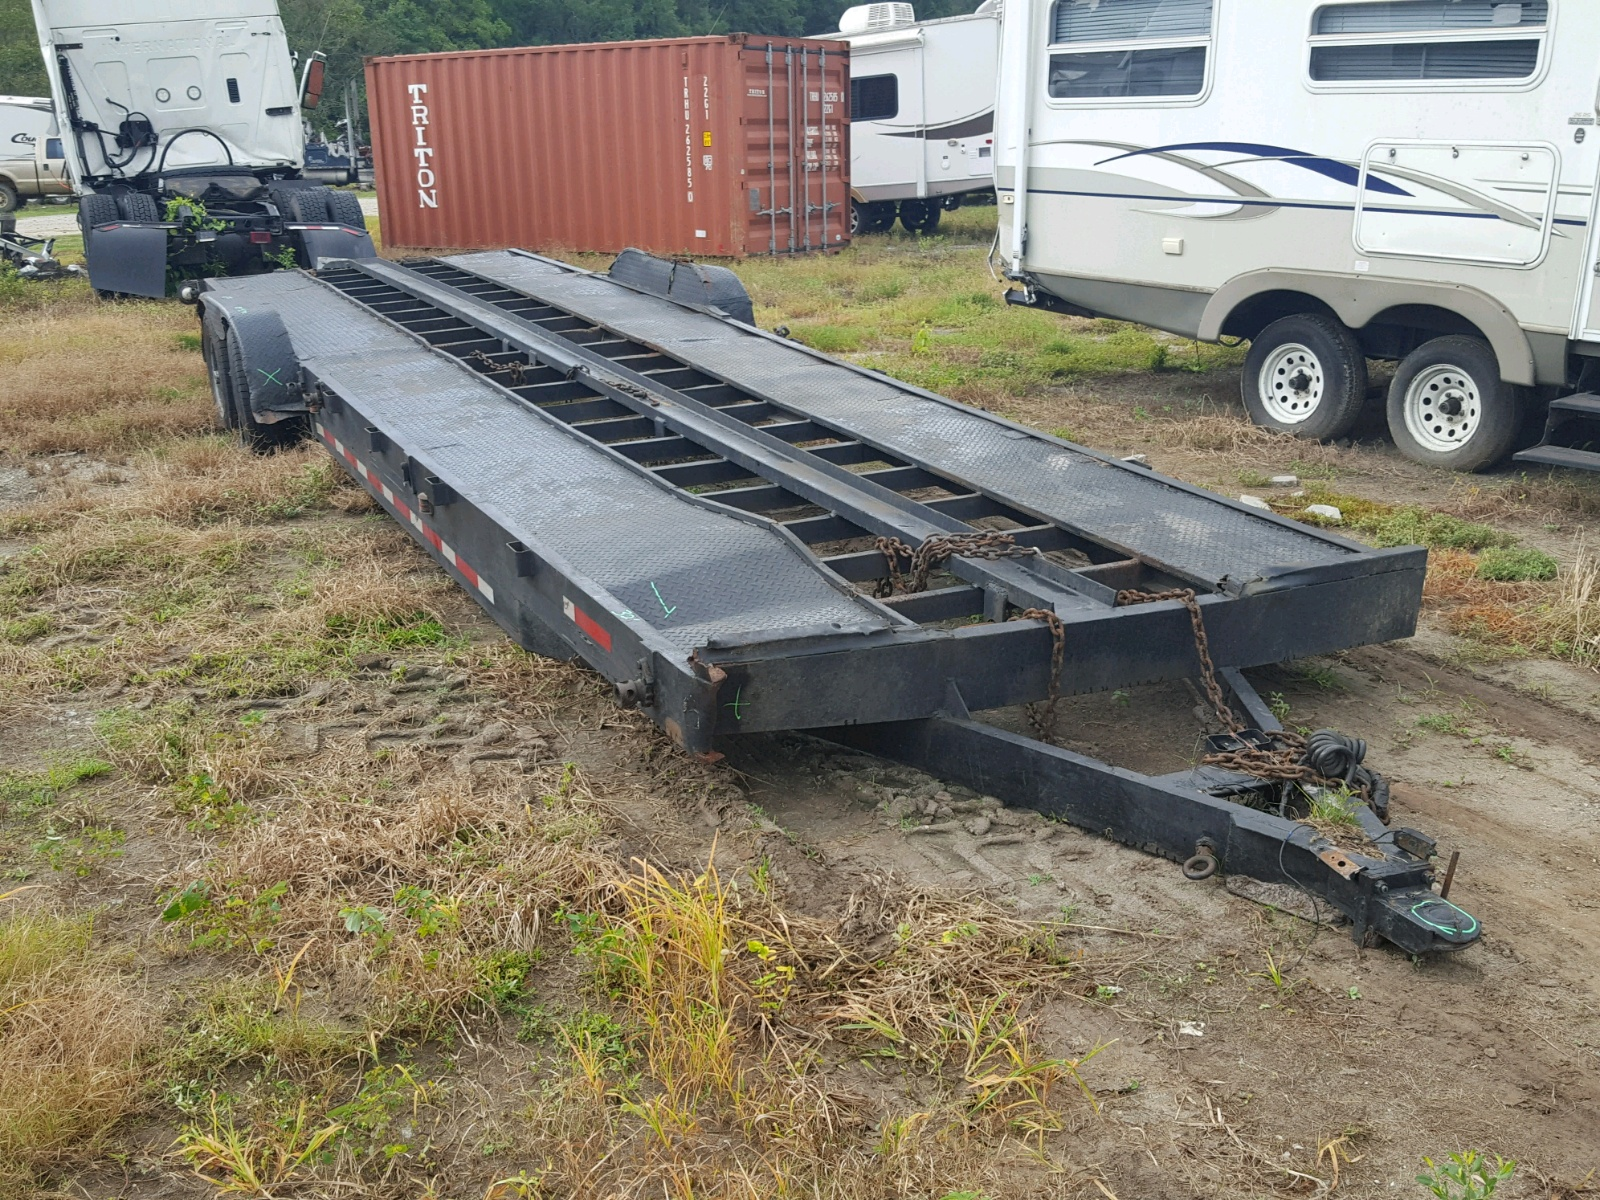 Salvage 2004 Trailers TRAILER for sale